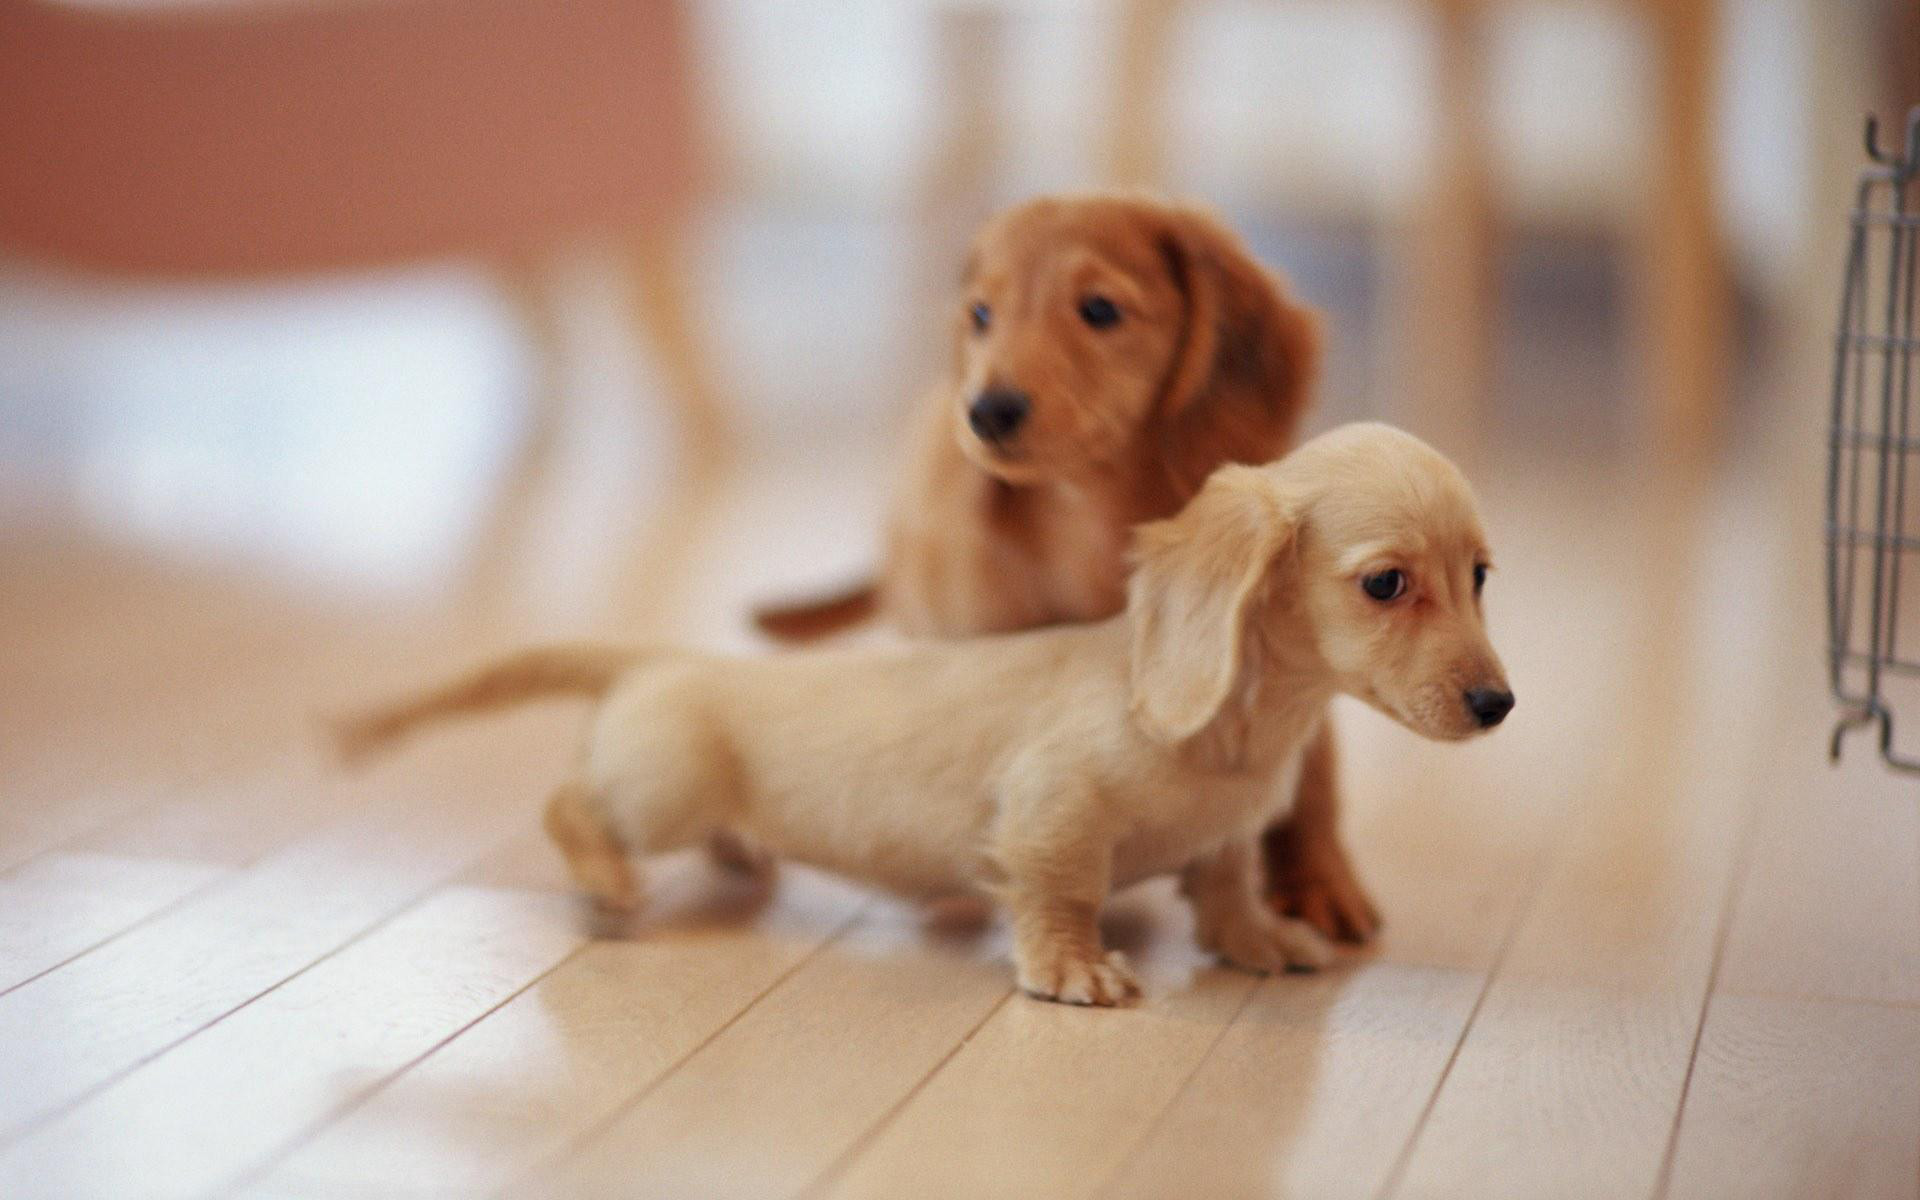 Cute Puppies and Dogs Wallpaper × Wallpapers Dogs Puppies | HD Wallpapers |  Pinterest | Dog wallpaper, Wallpaper and Wallpapers android